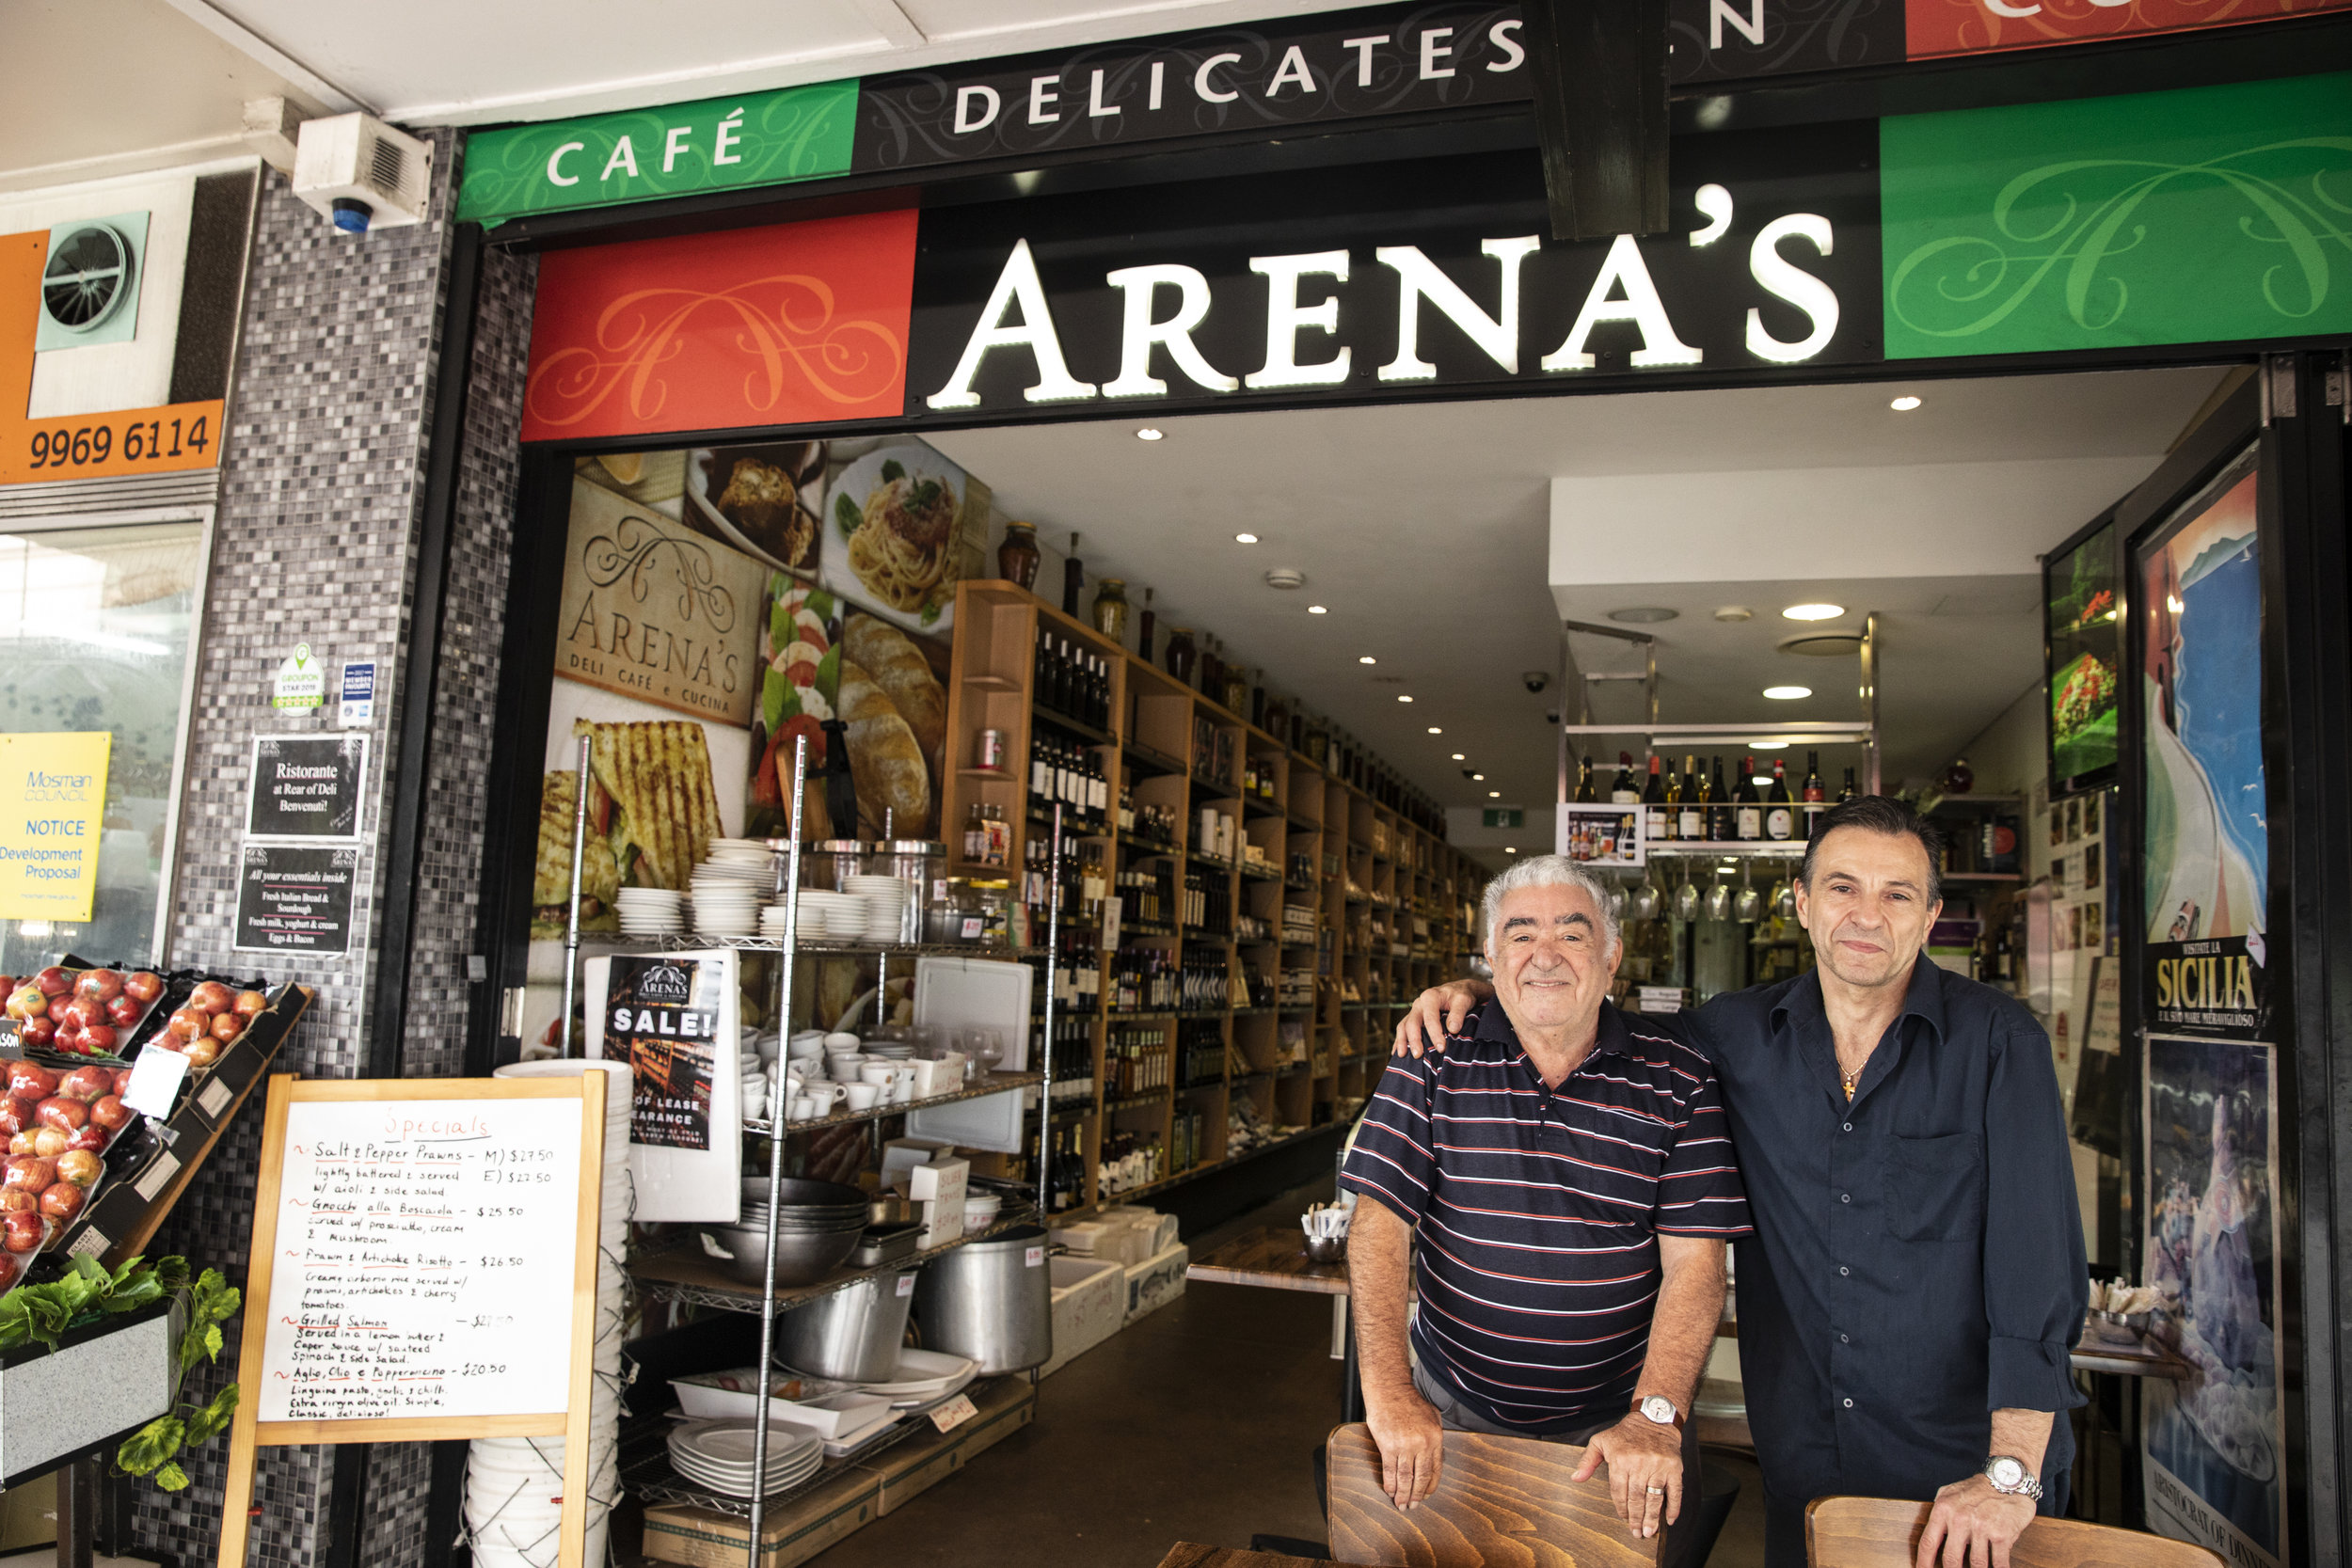 Matteo and Joseph pictured outside Arena's Deli this week.